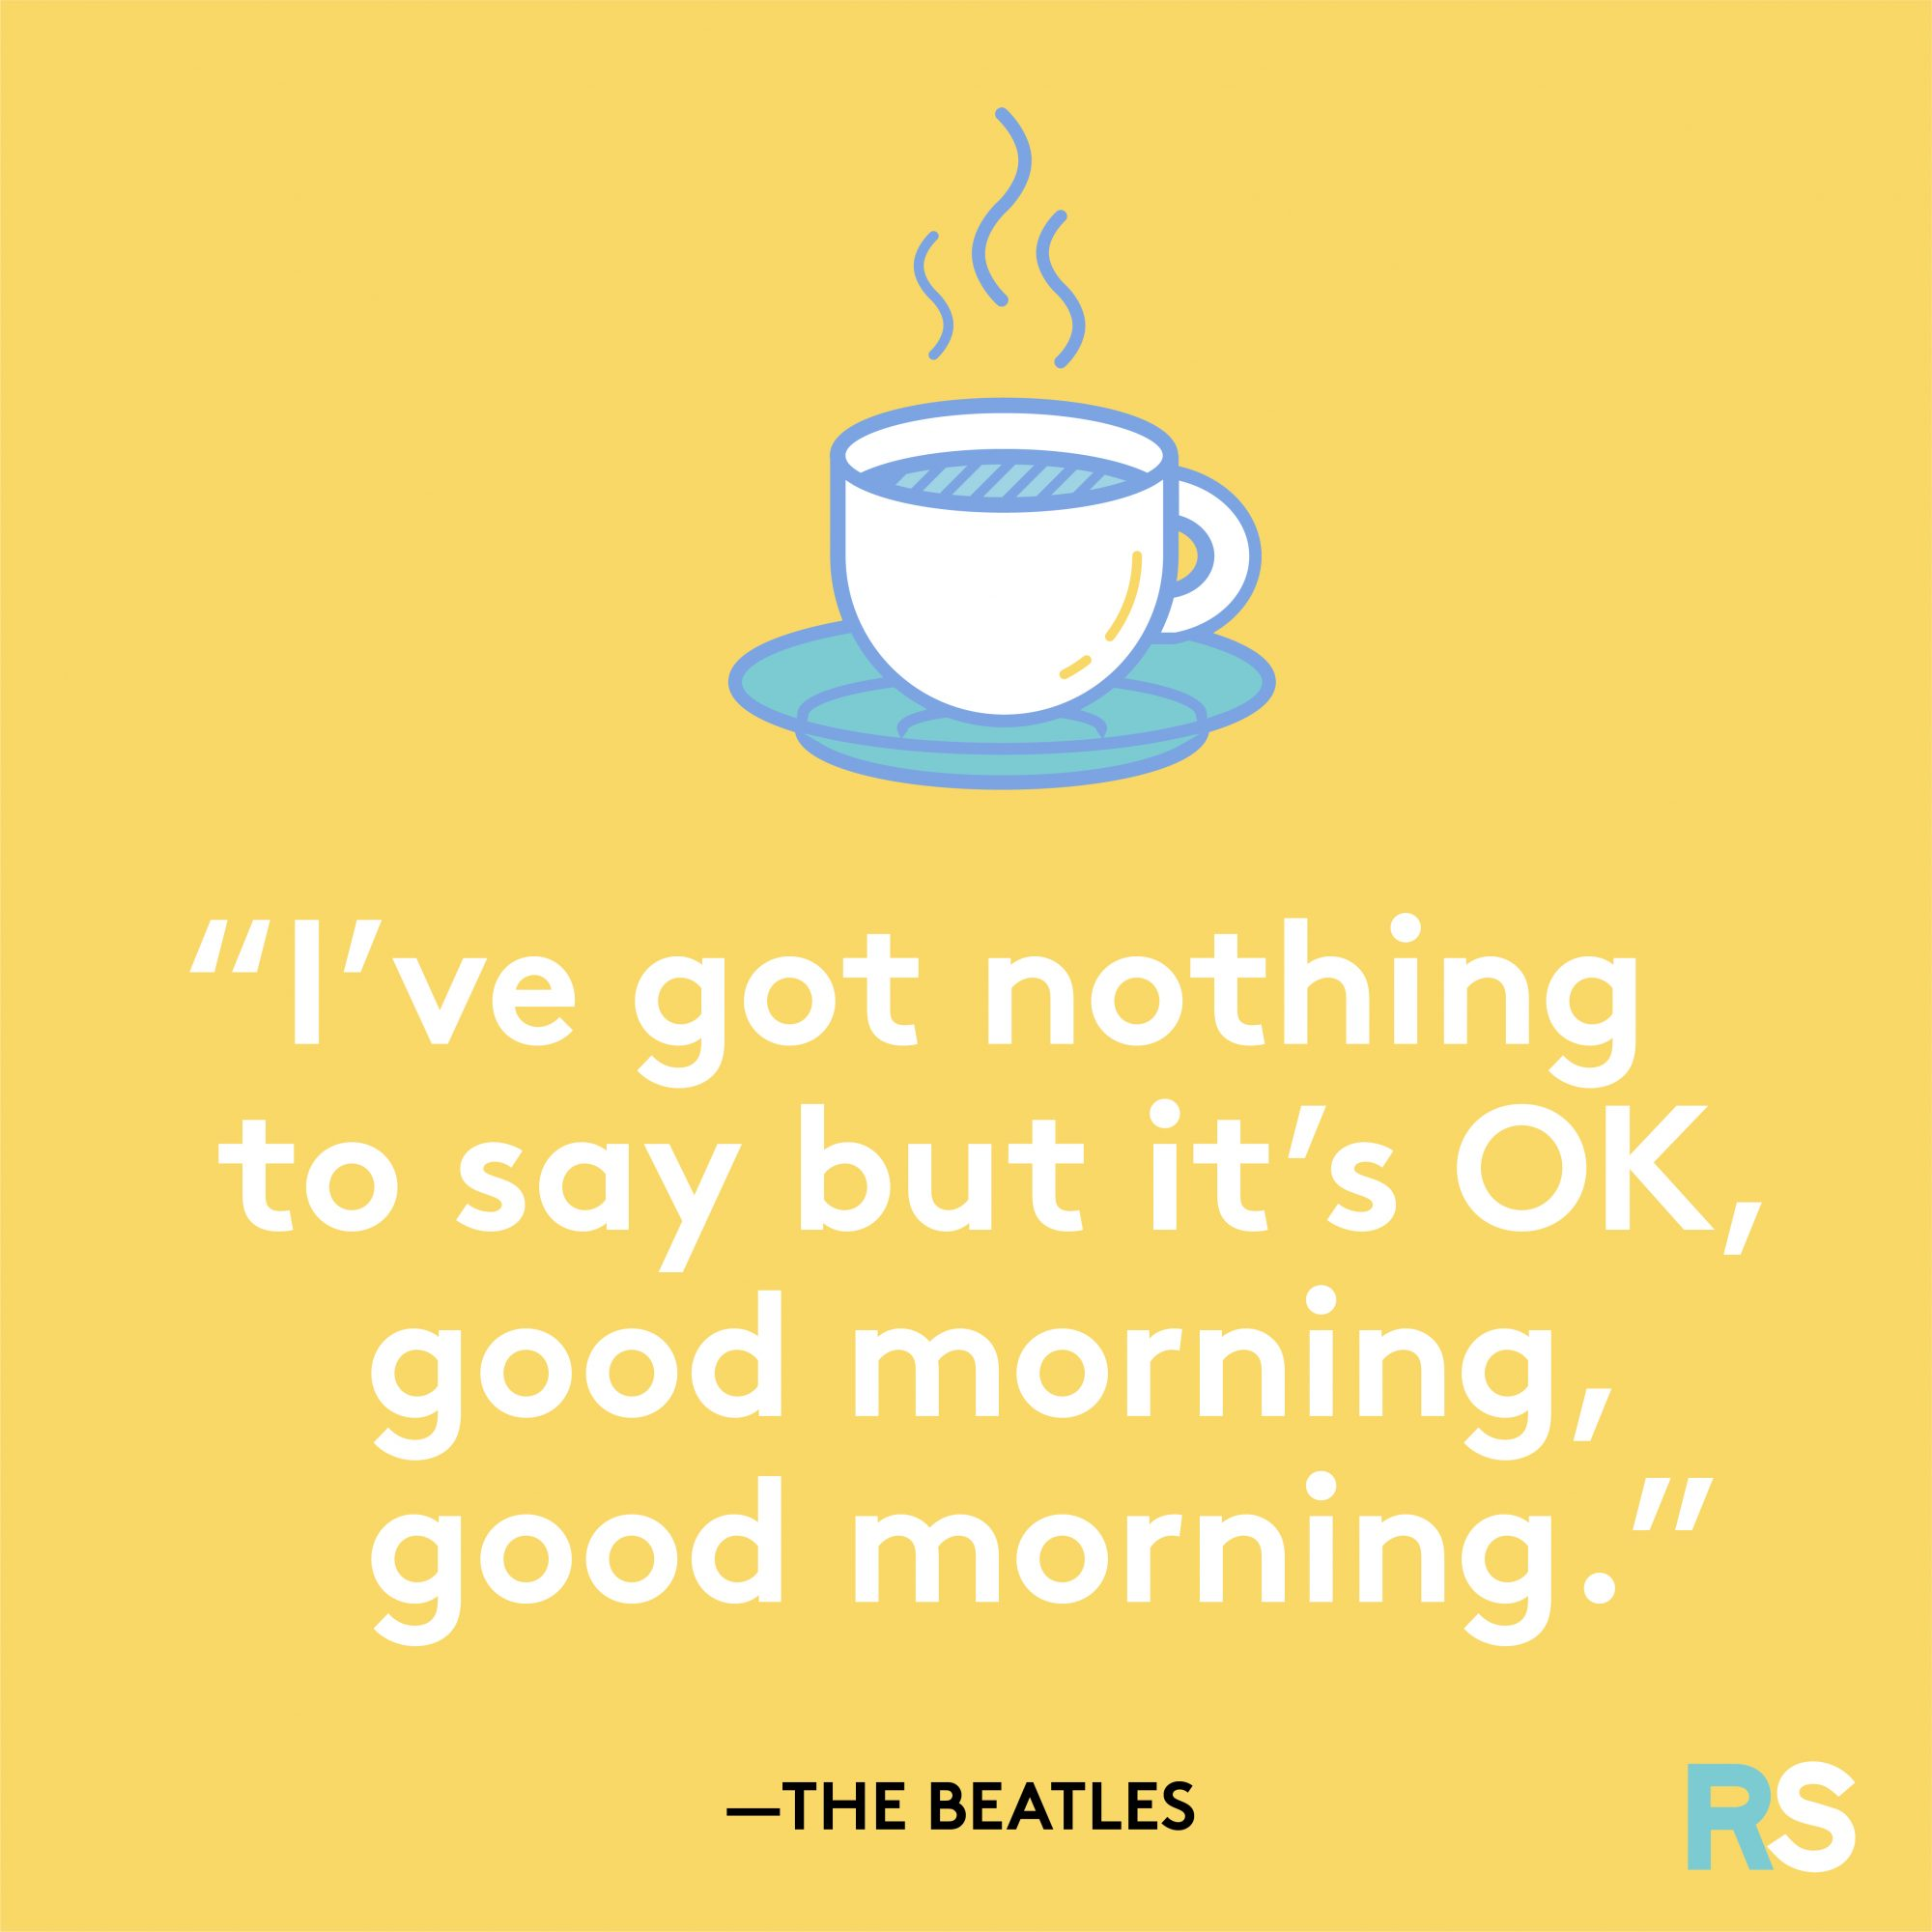 Good Morning, Good Morning by the Beatles